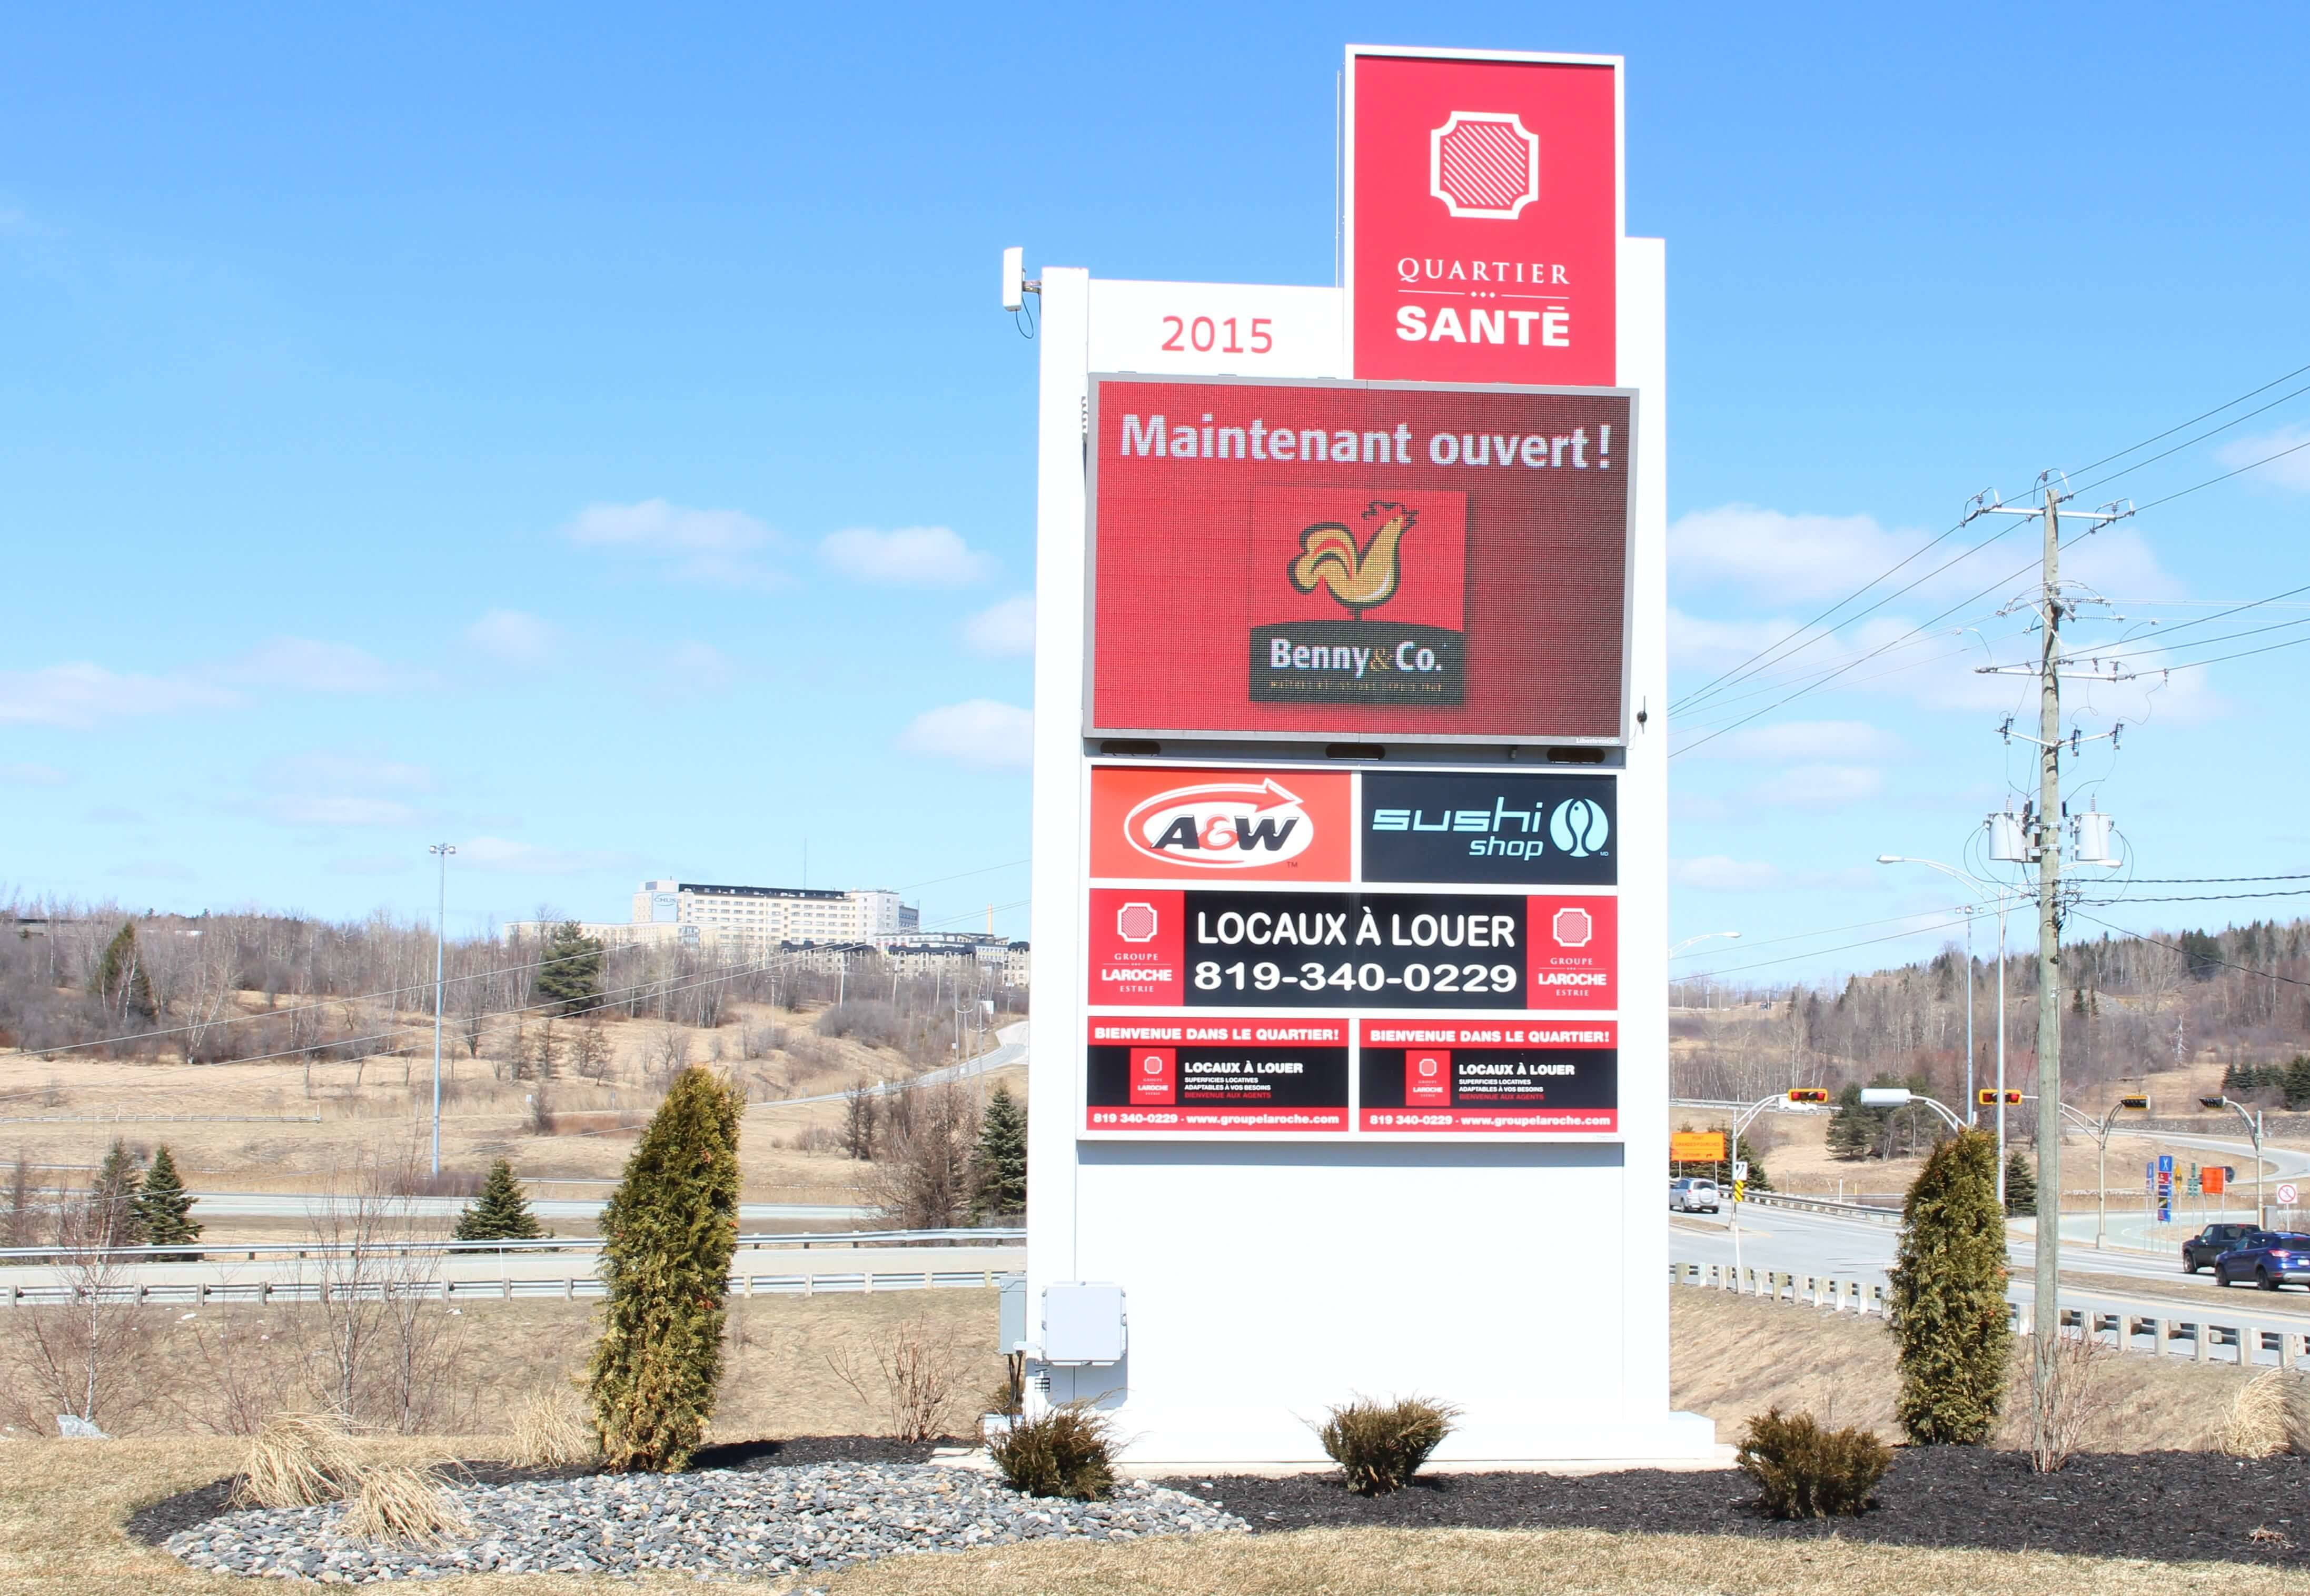 Portfolio digital signage led display signs libertevision for Accent meuble matane